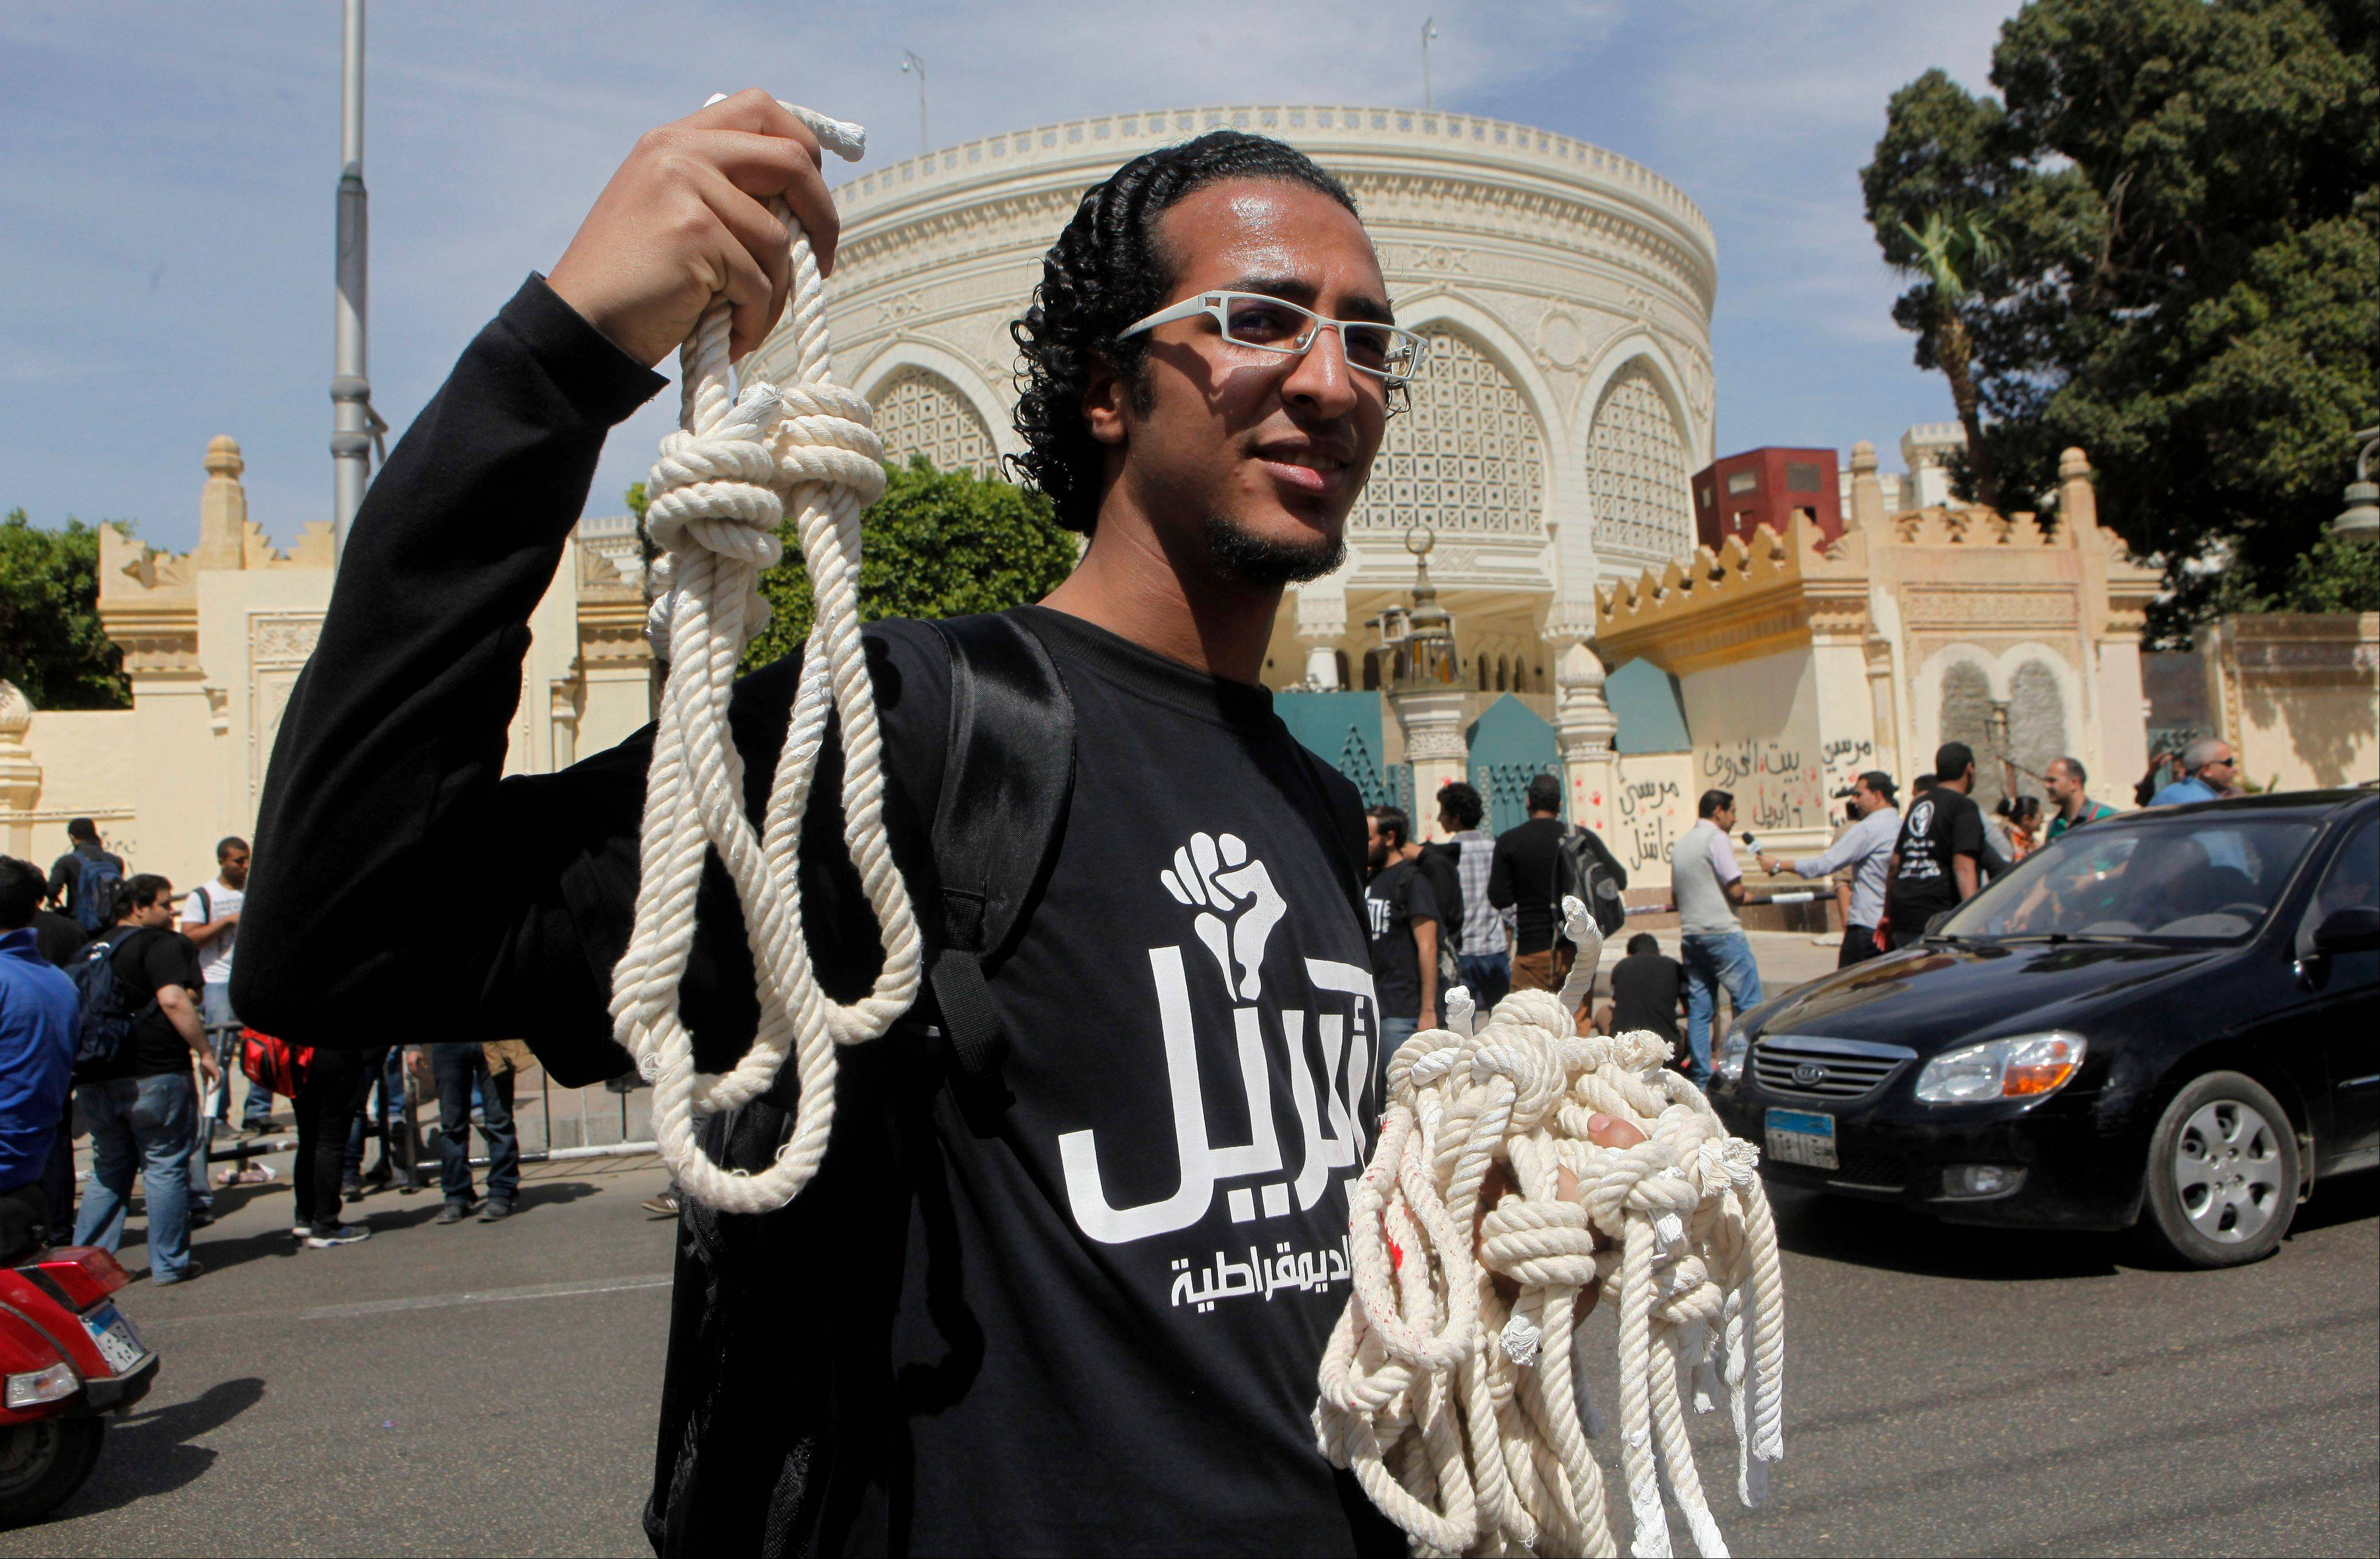 Associated Press A member of Egypt�s April 6 Youth Movement distributes nooses in front of the presidential palace in Cairo Saturday, April 6. The group is rallying to mark its fifth anniversary and to protest against President Mohammed Morsi.